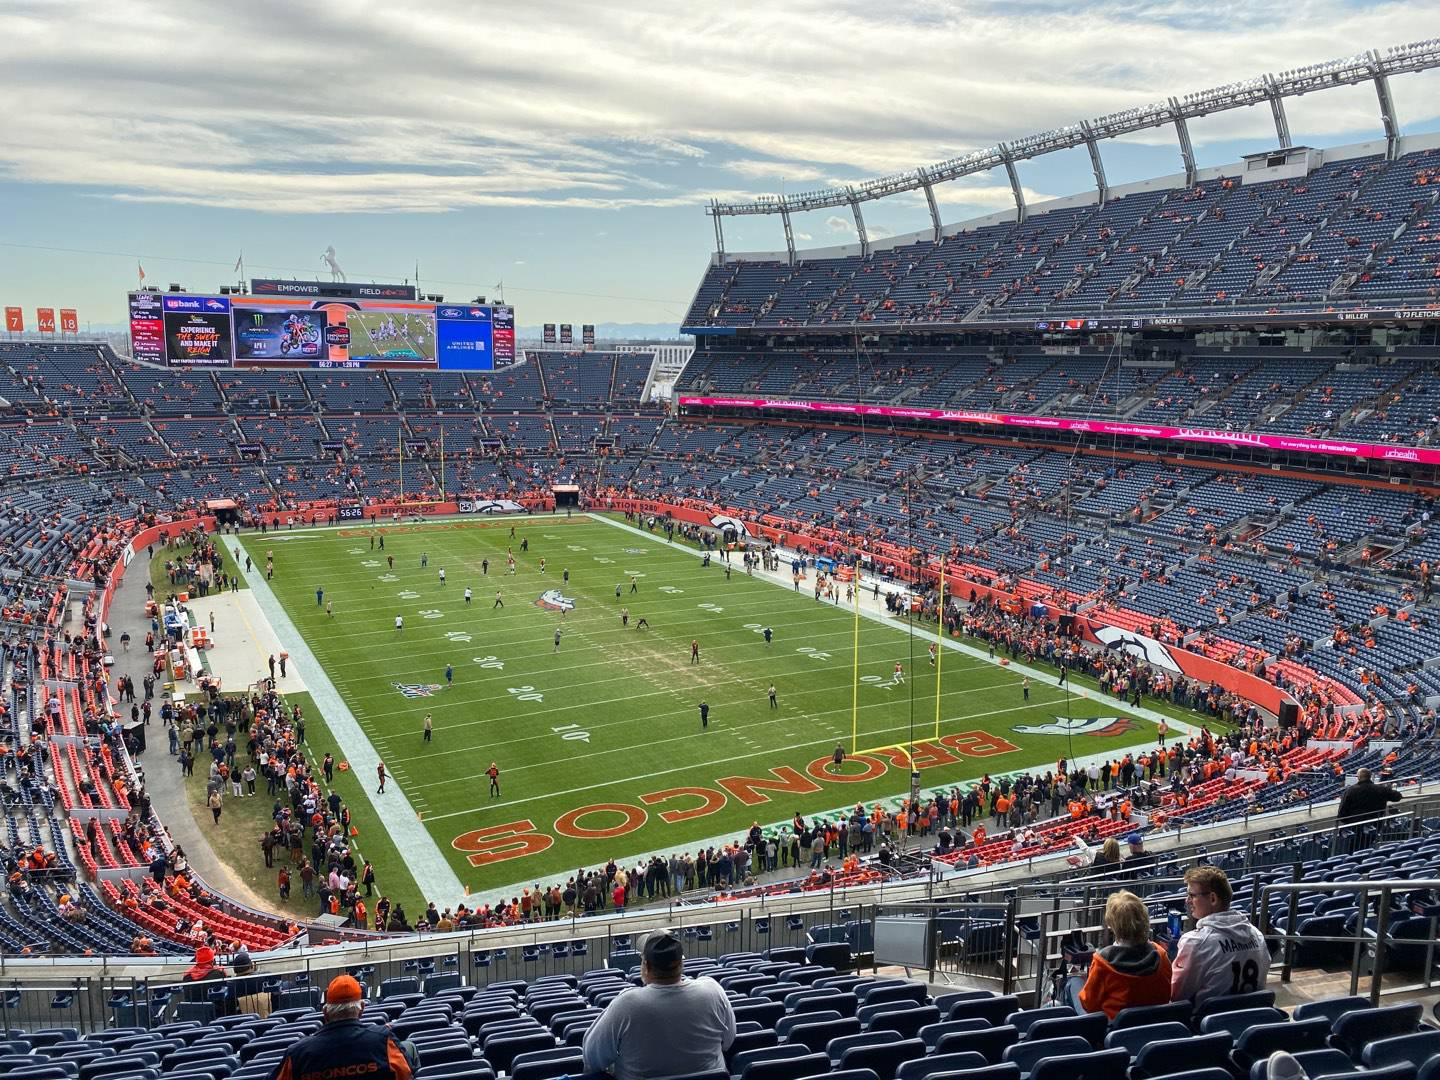 Empower Field at Mile High Stadium Section 326 Row 17 Seat 9